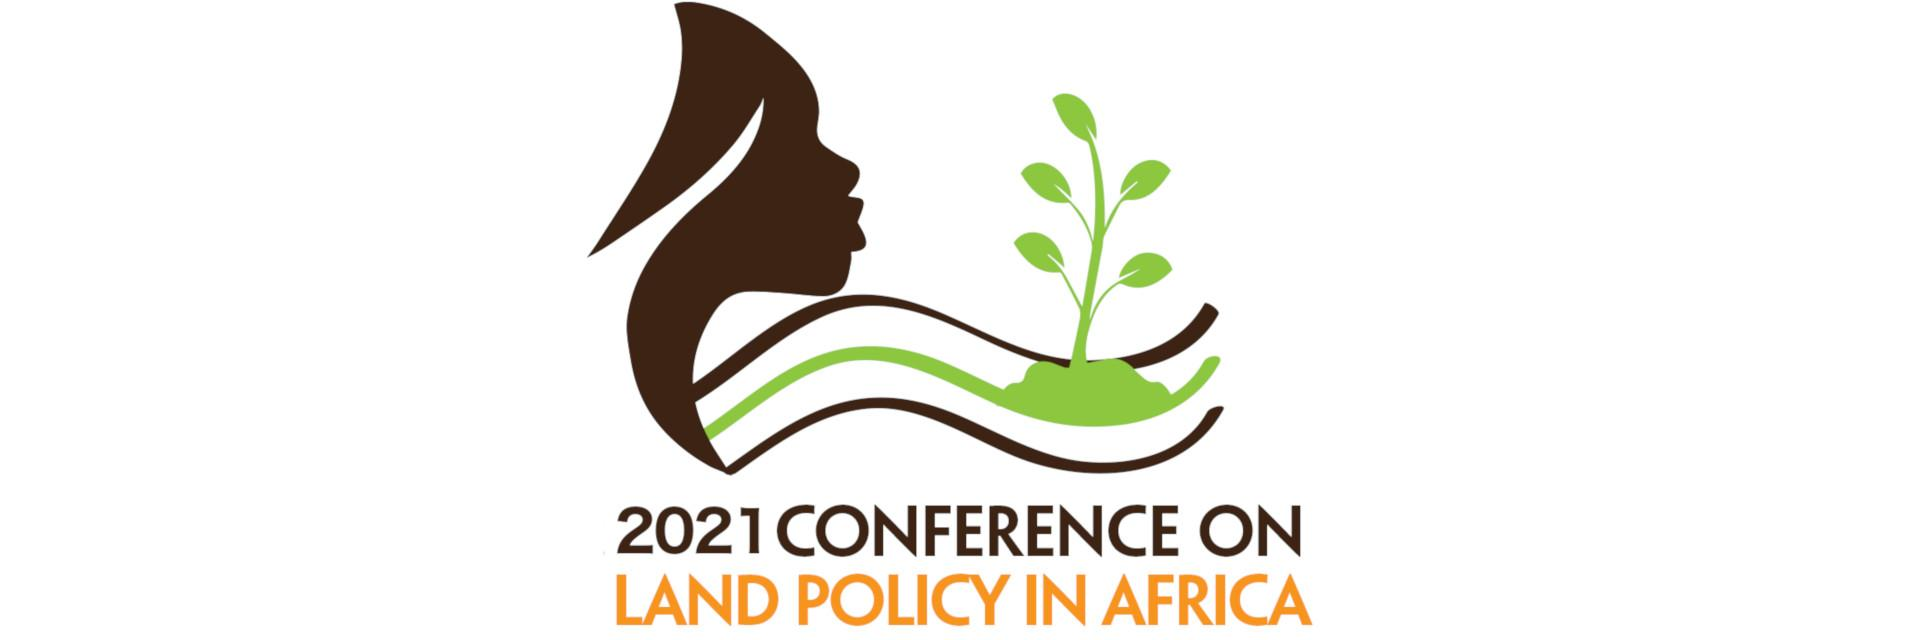 2021 Conference on Land Policy in Africa (CLPA-2021)